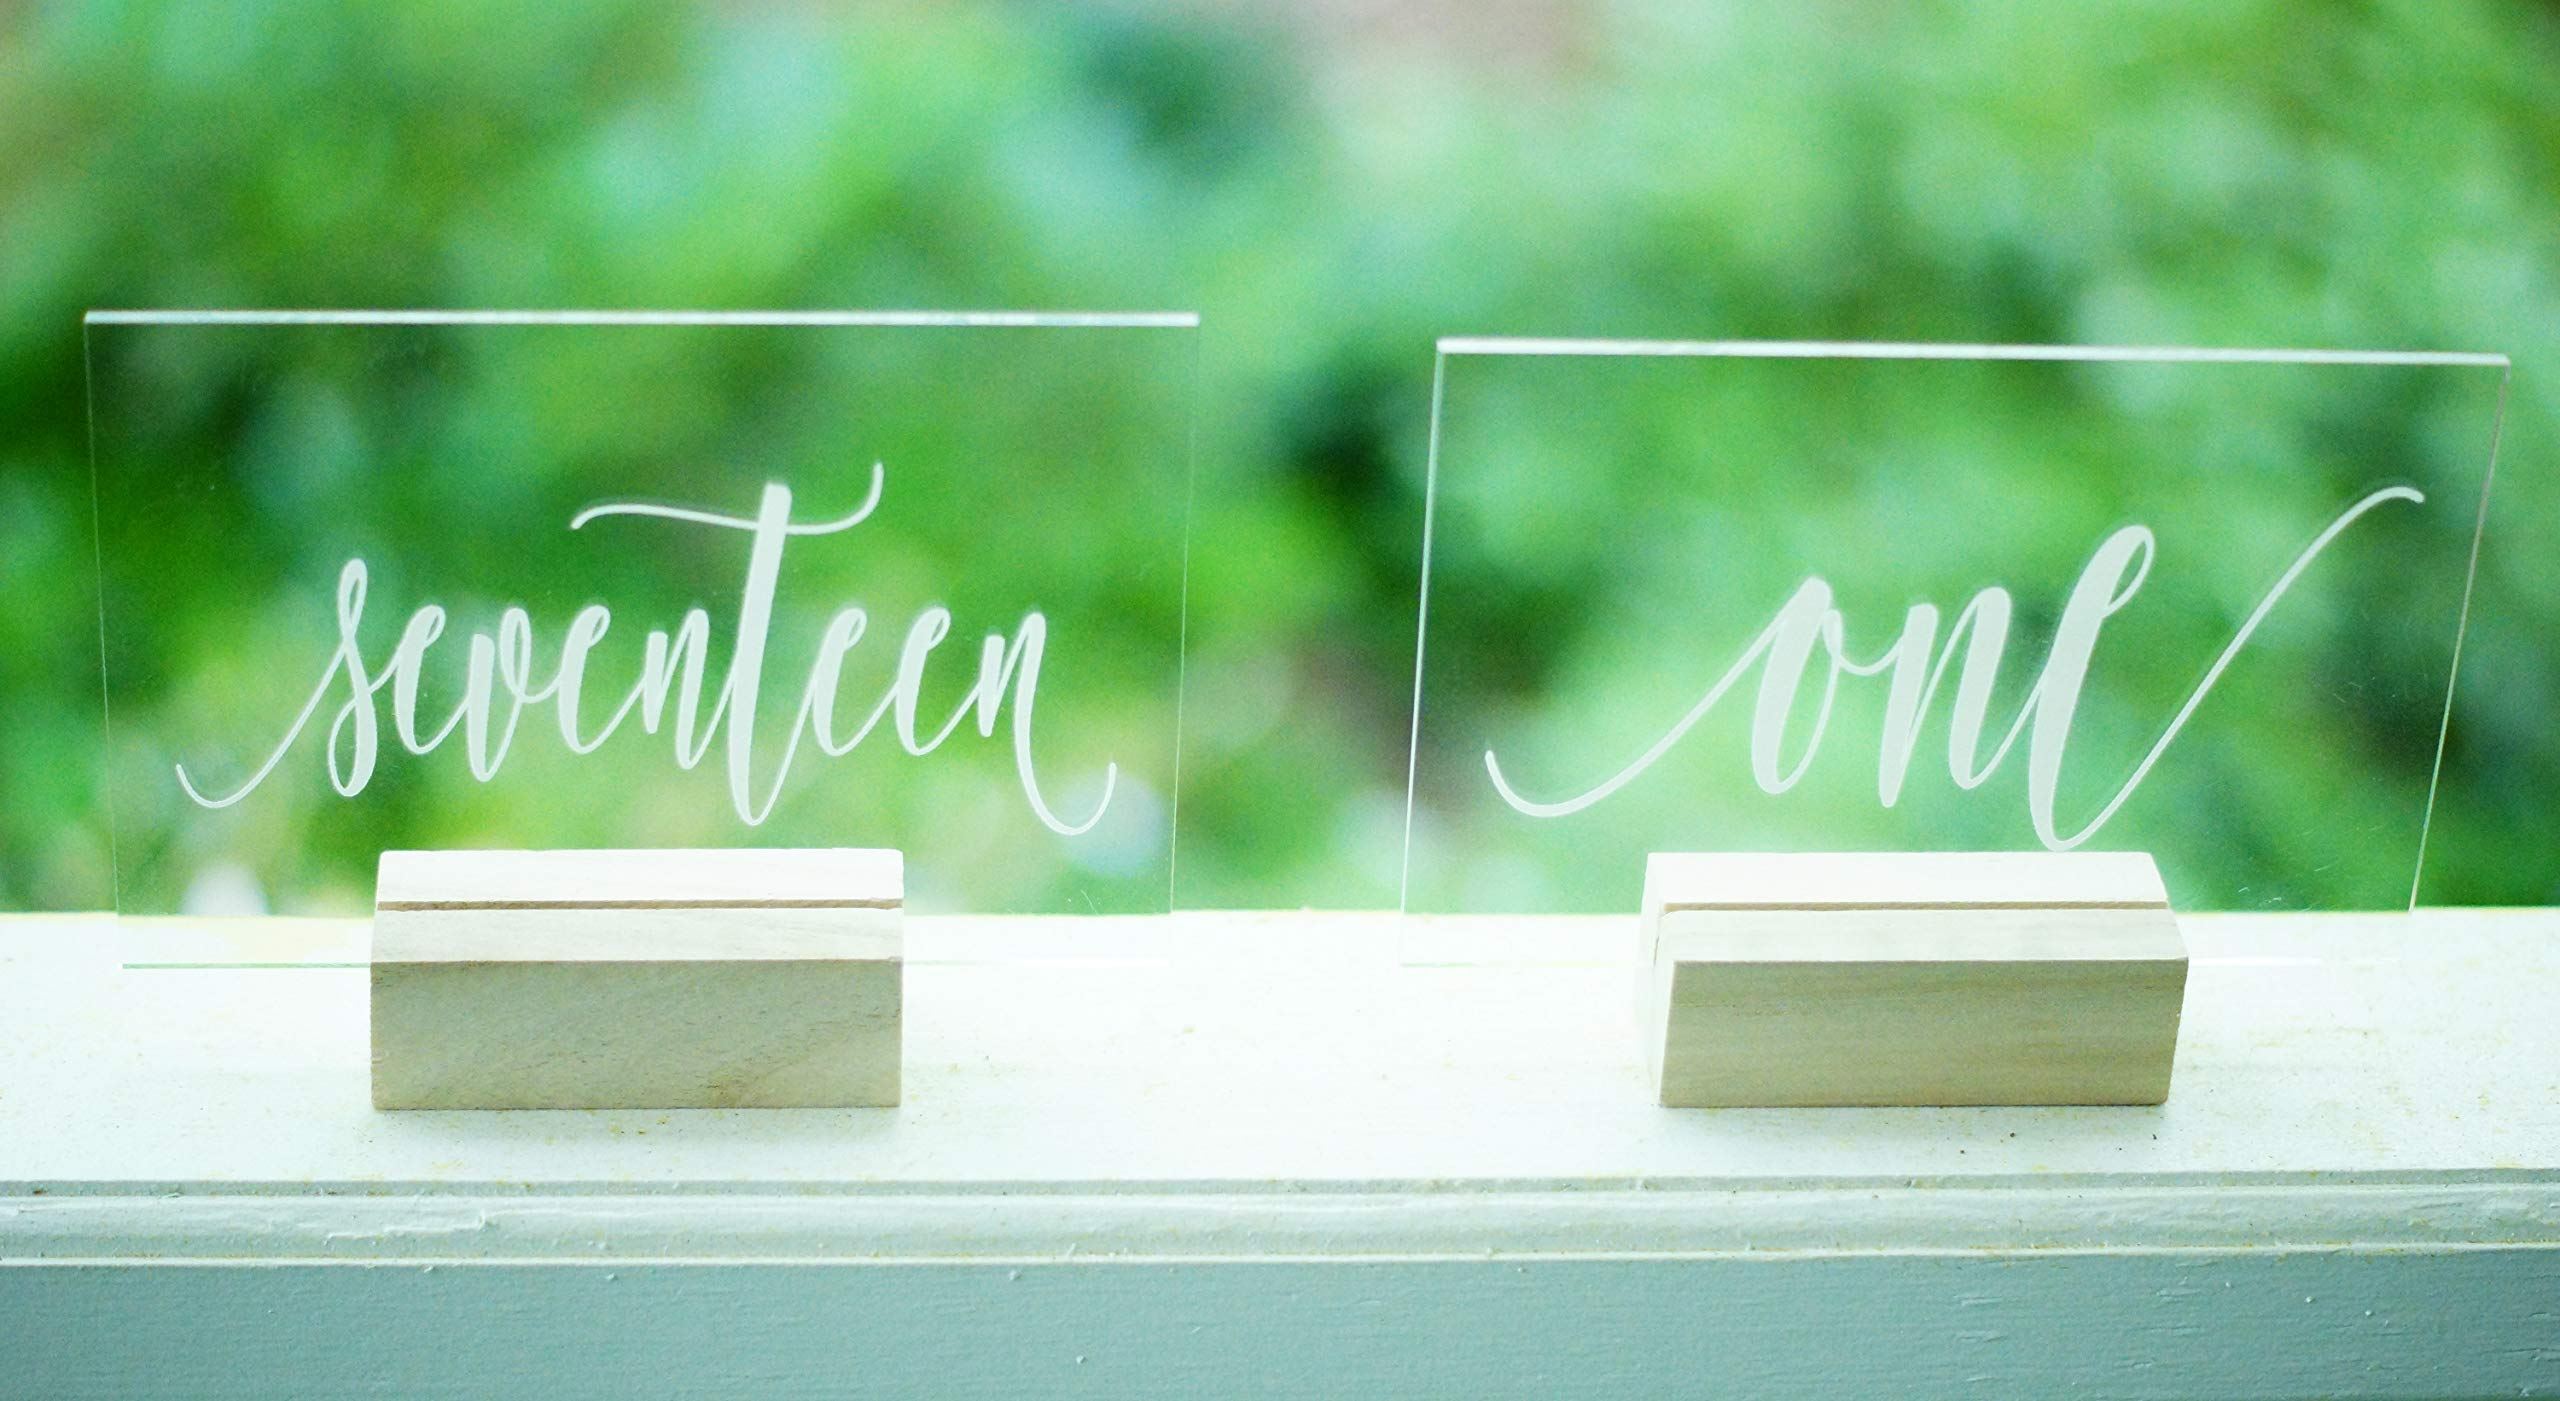 Set of 20 Acrylic Calligraphy Table Numbers   Wedding Event Shower Reception Restaurant   Glass like Clear Modern Formal Elegant Vintage Rustic   Sign Placard Card   Lettering Script Handwriting Print by Generic (Image #2)